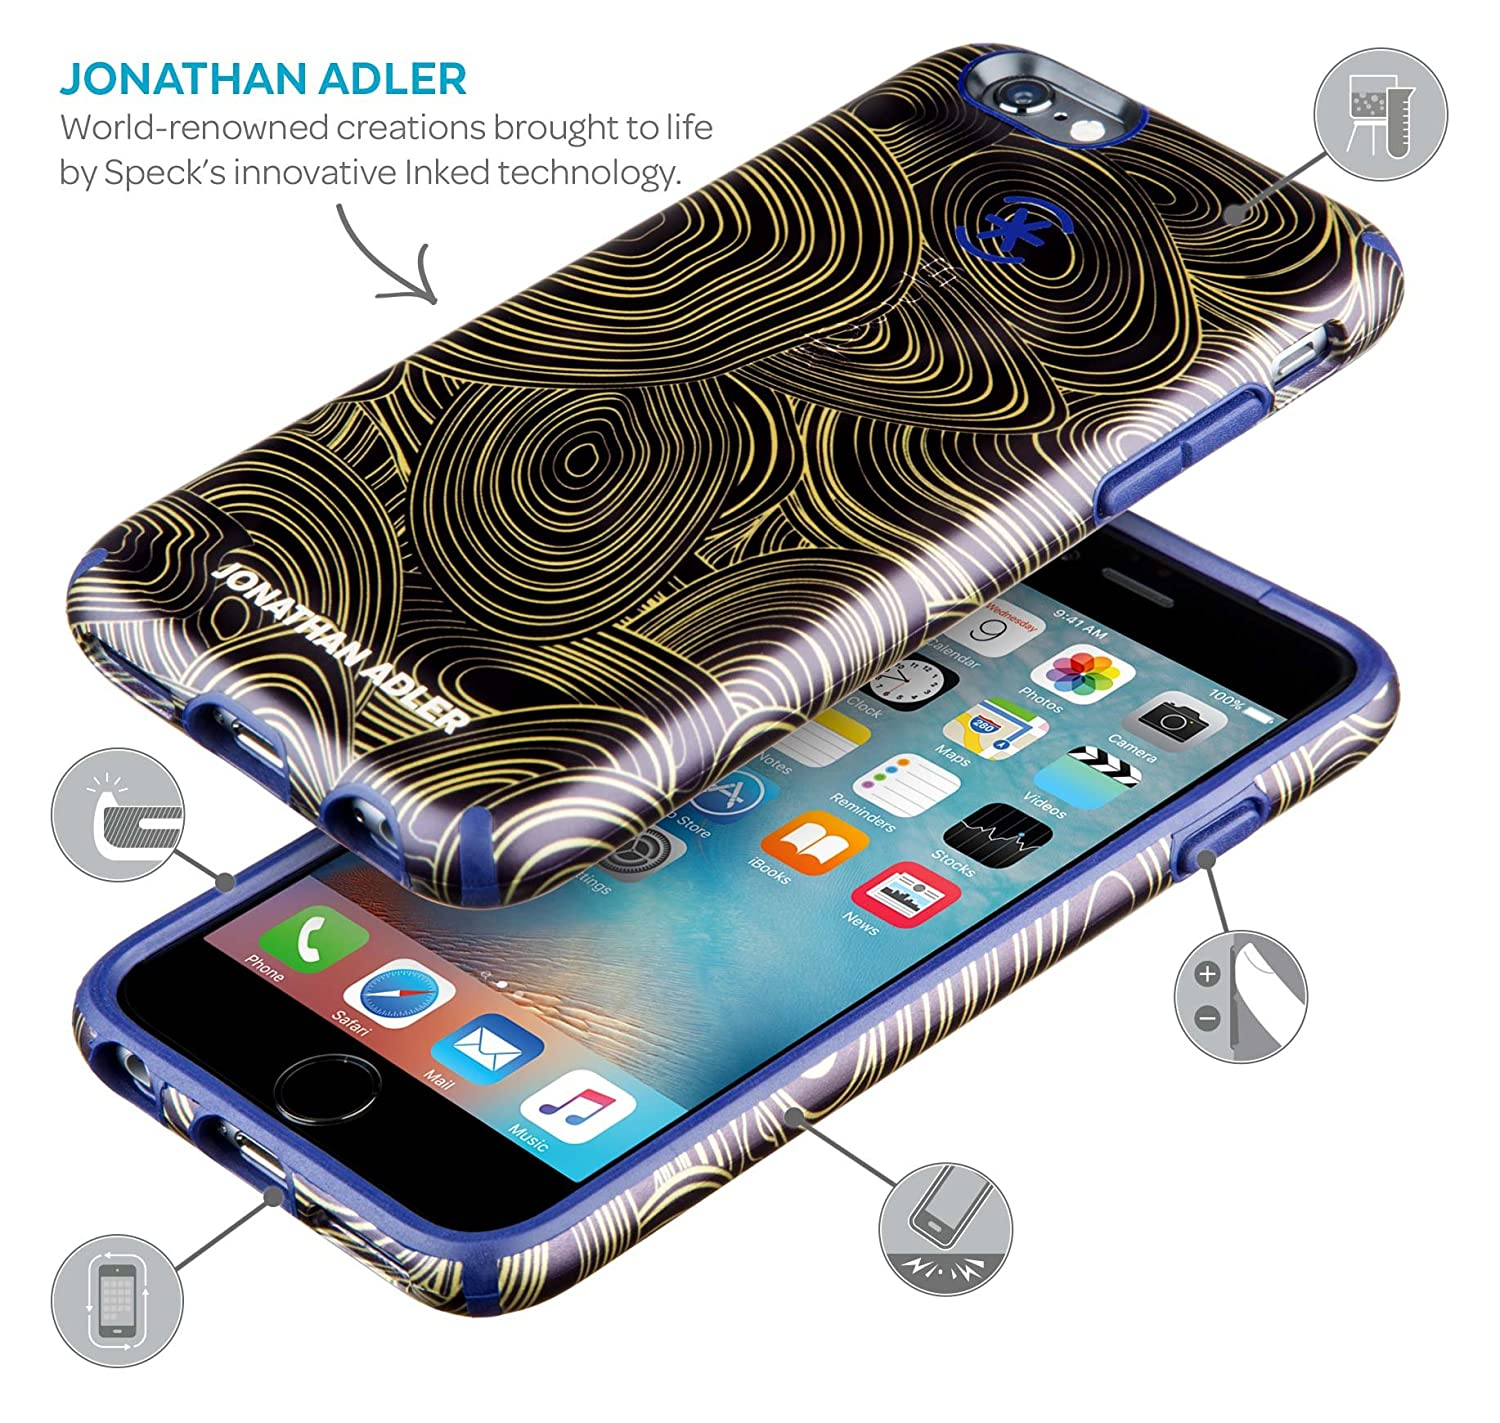 online store da6e6 ec8ff Speck Products CandyShell Inked Jonathan Adler Cell Phone Case foriPhone  6/6S - Retail Packaging - AquaGreekKey/Lipstick Matte